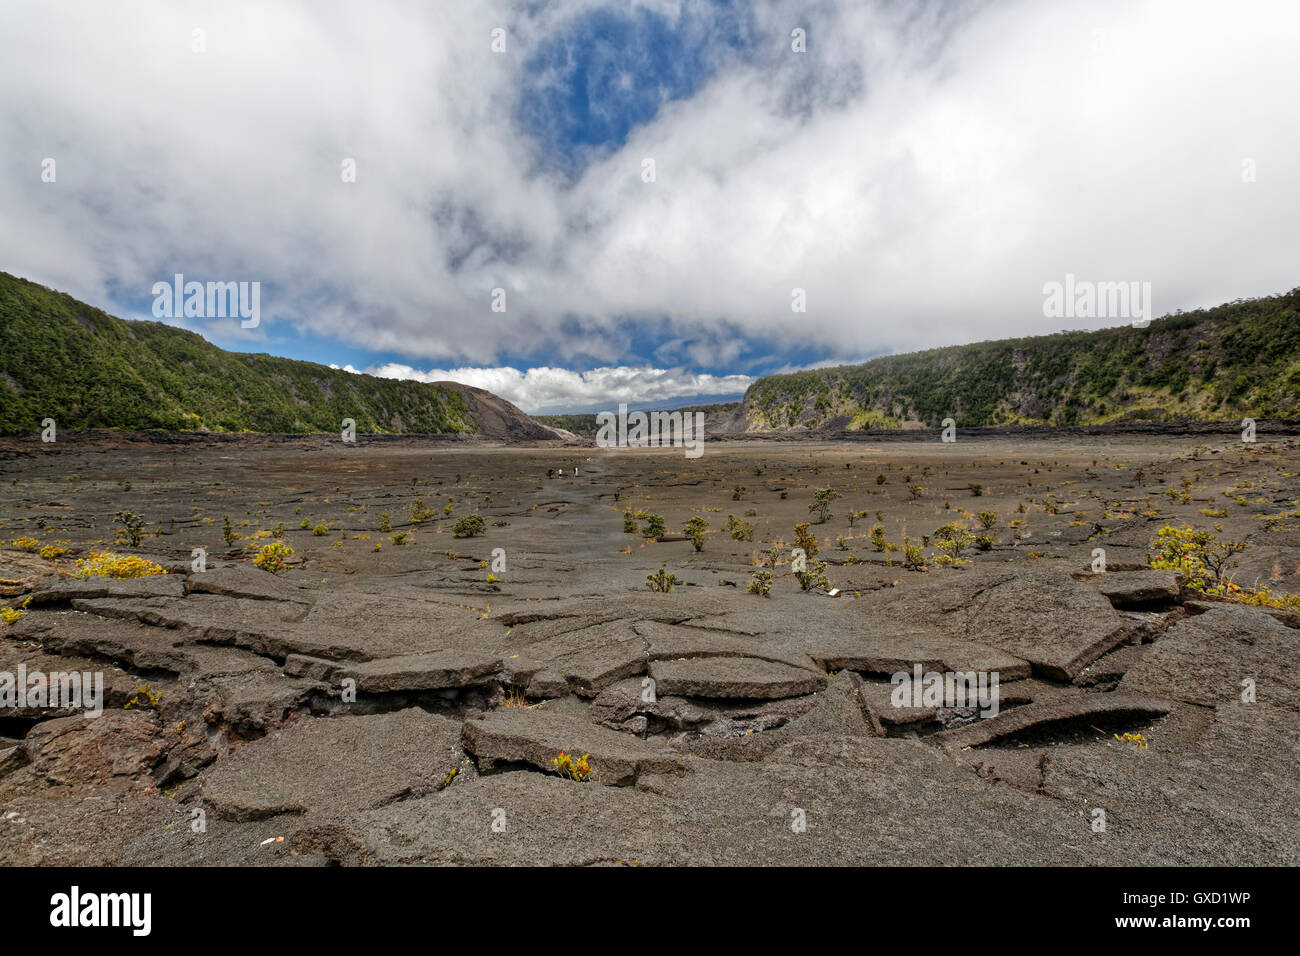 Kilauea Crater in Hawaii National Park shot midday with no people within the image - Stock Image